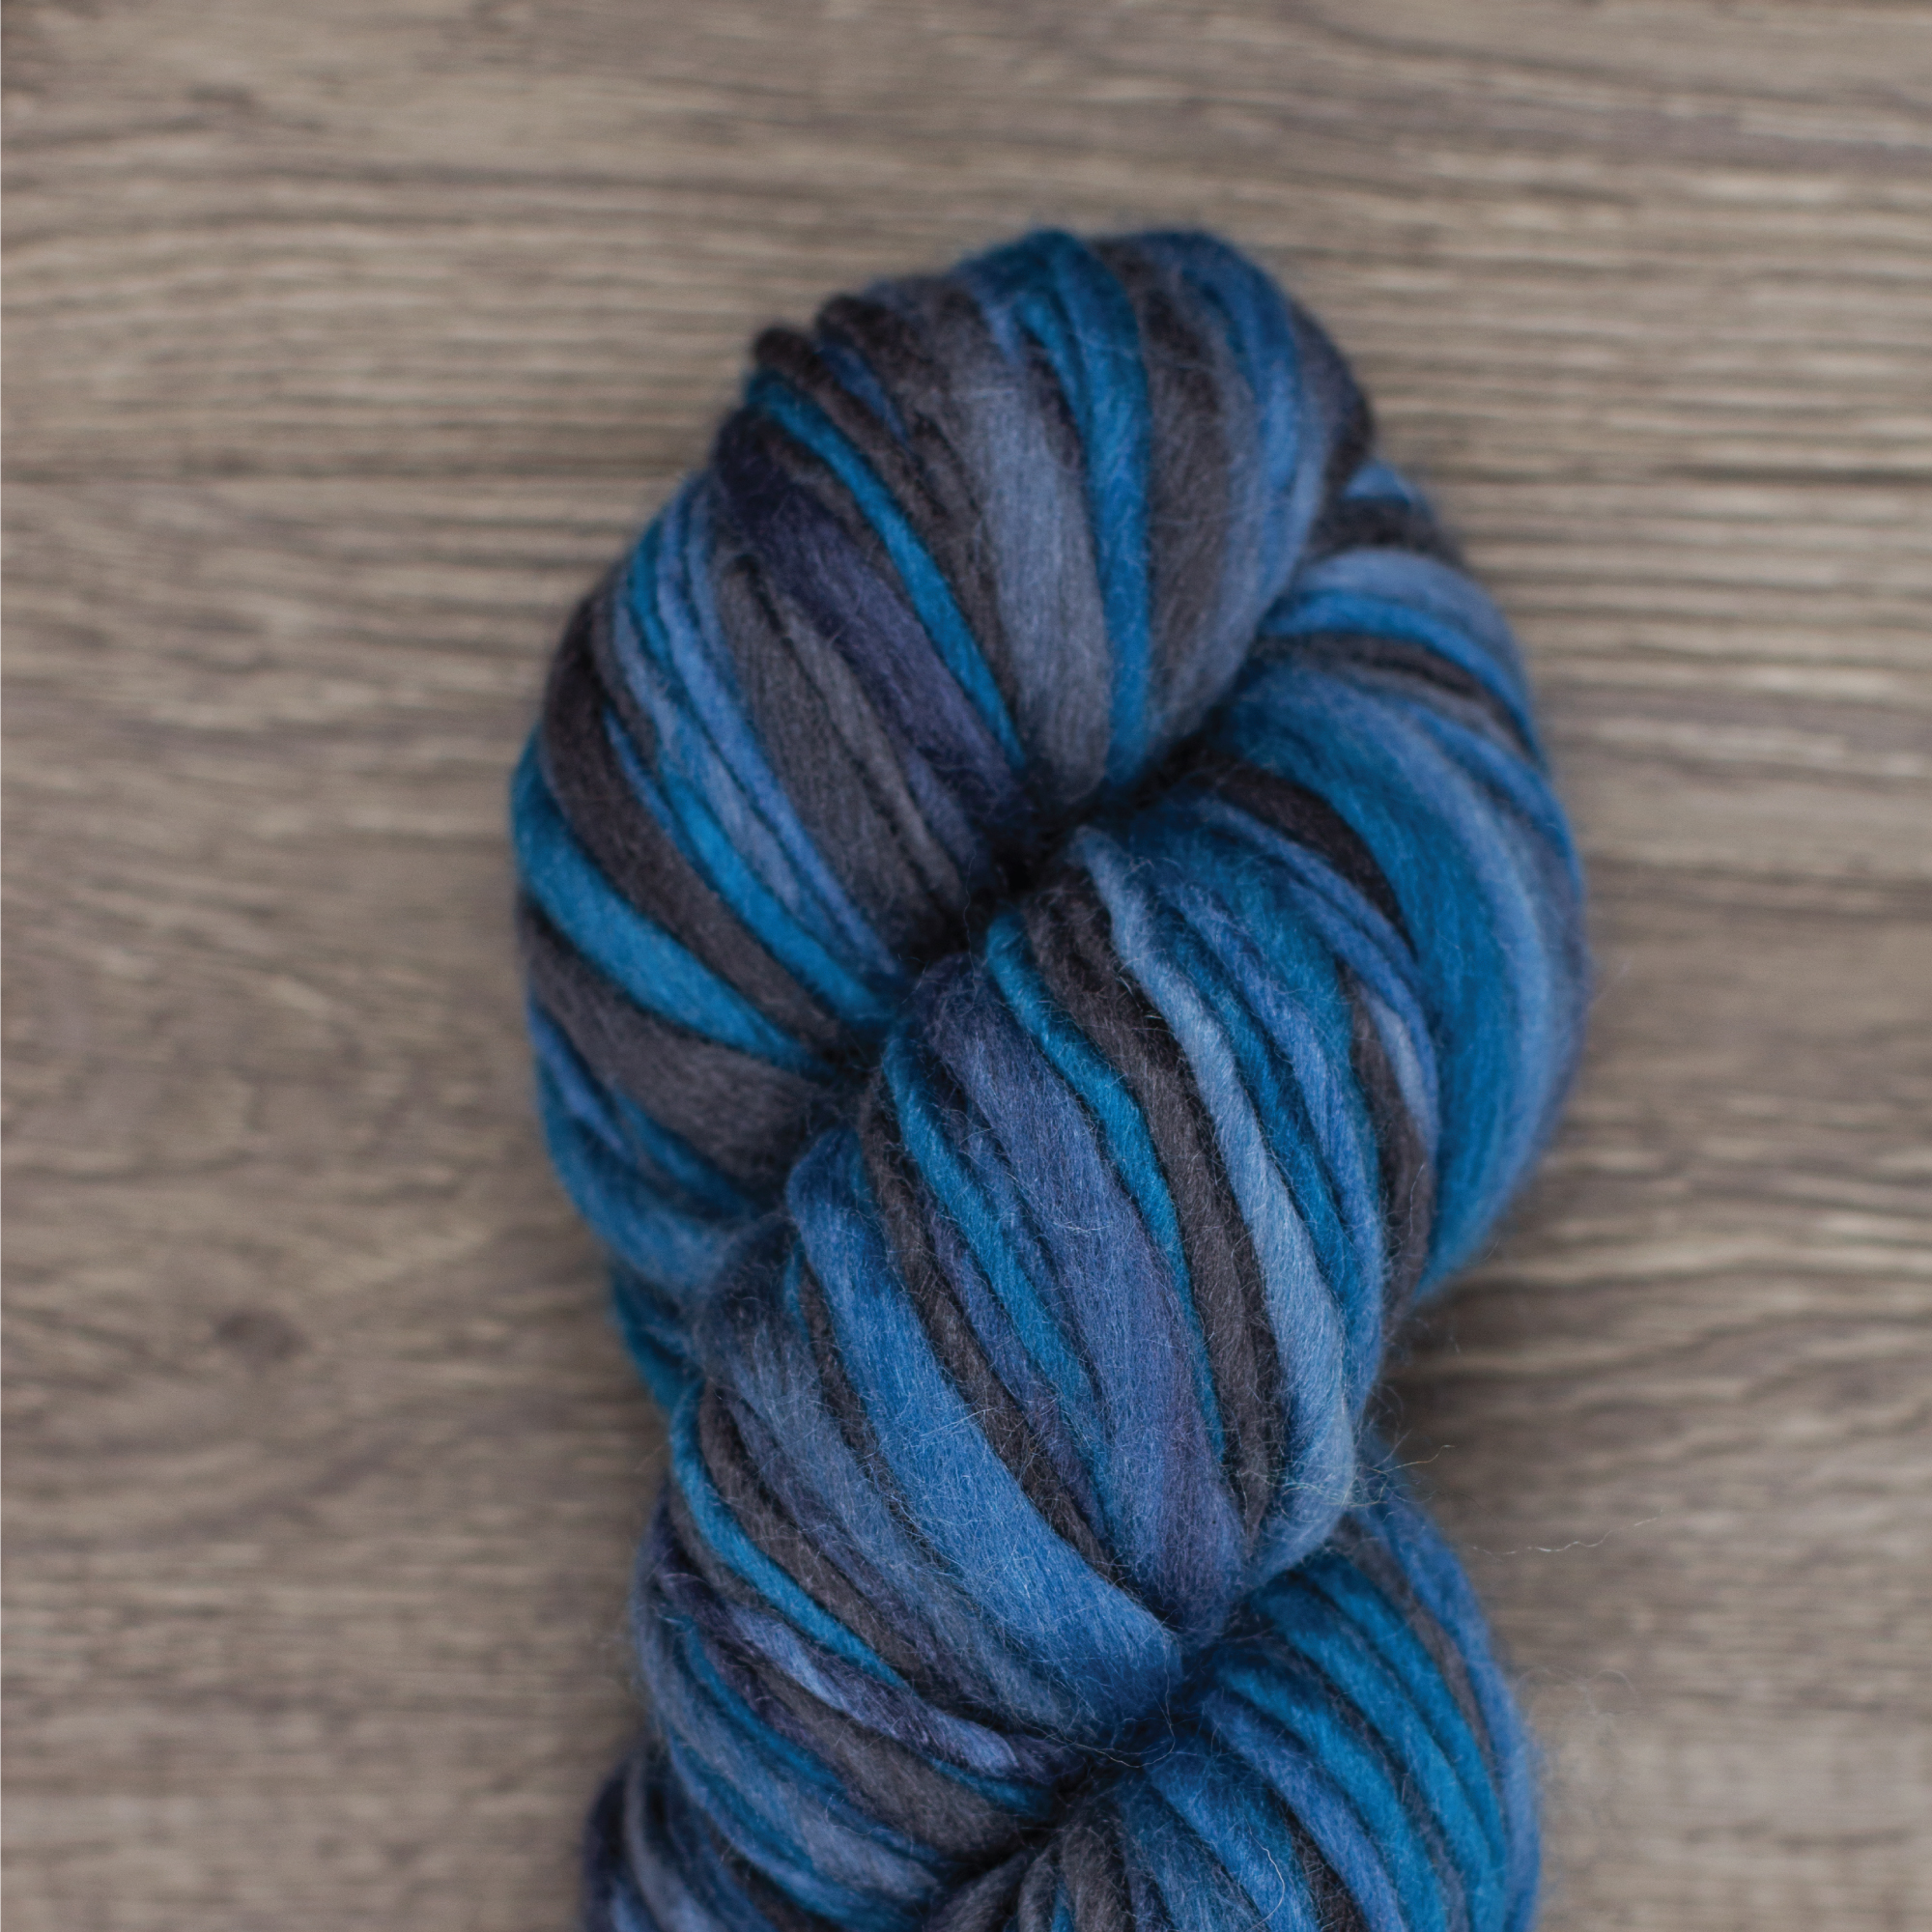 VIVACE by Cloud9 Fibers — 900213 | MOODY BLUES